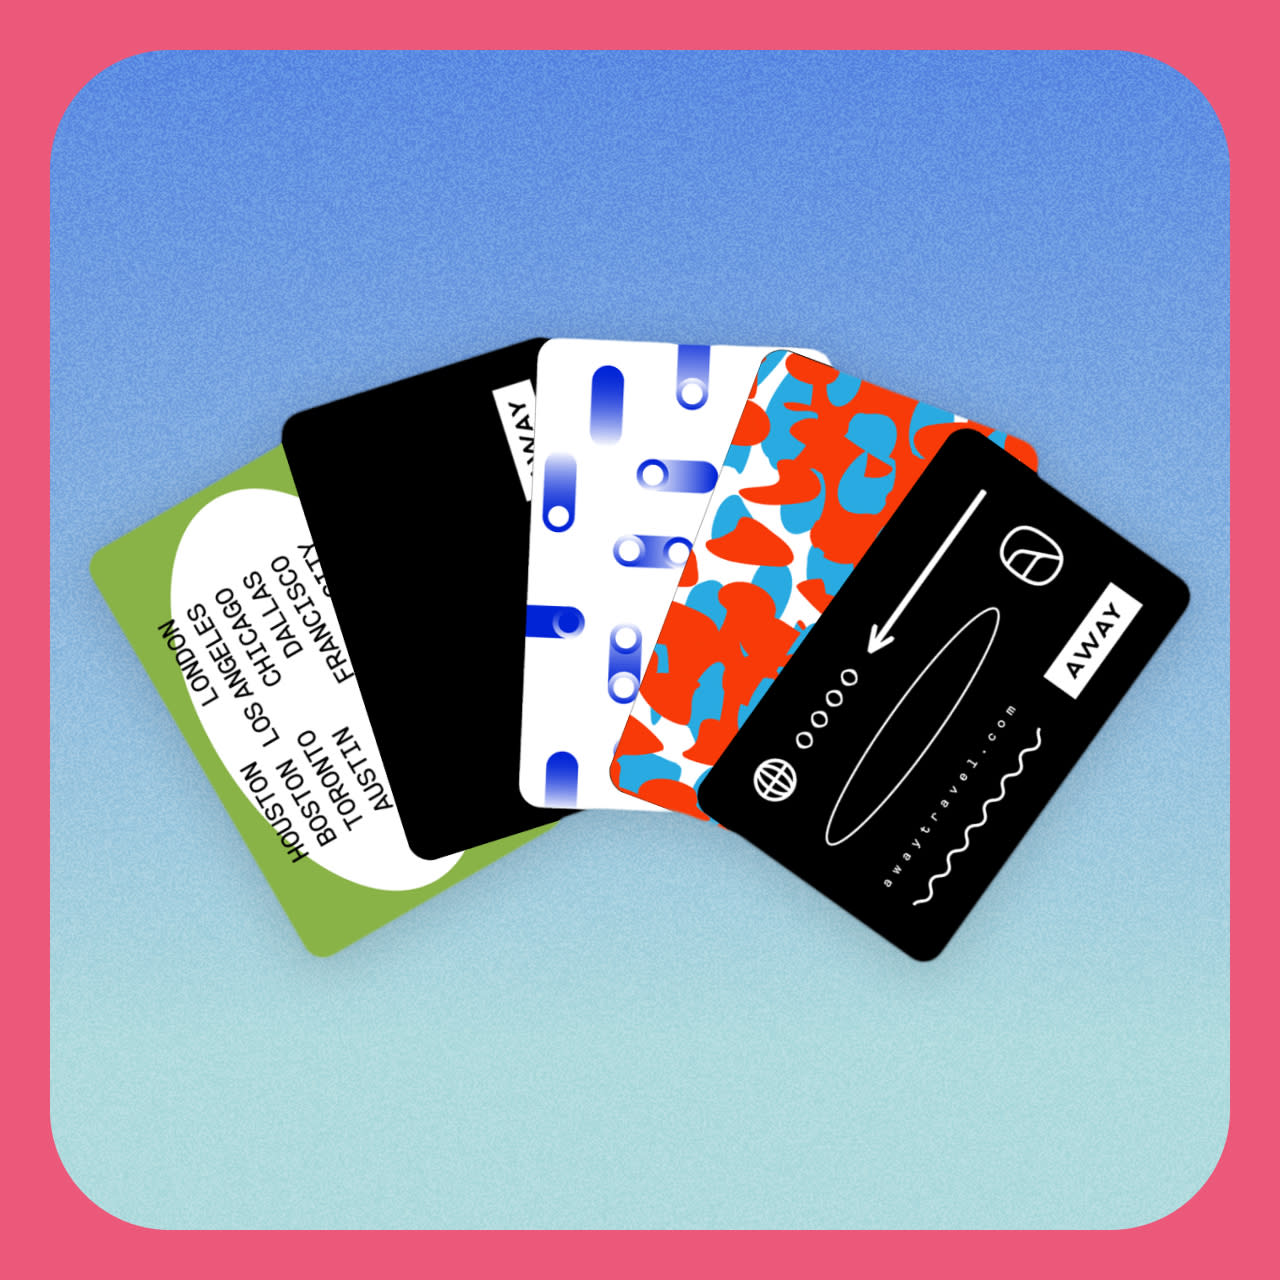 The digital gift card in a variety of card designs